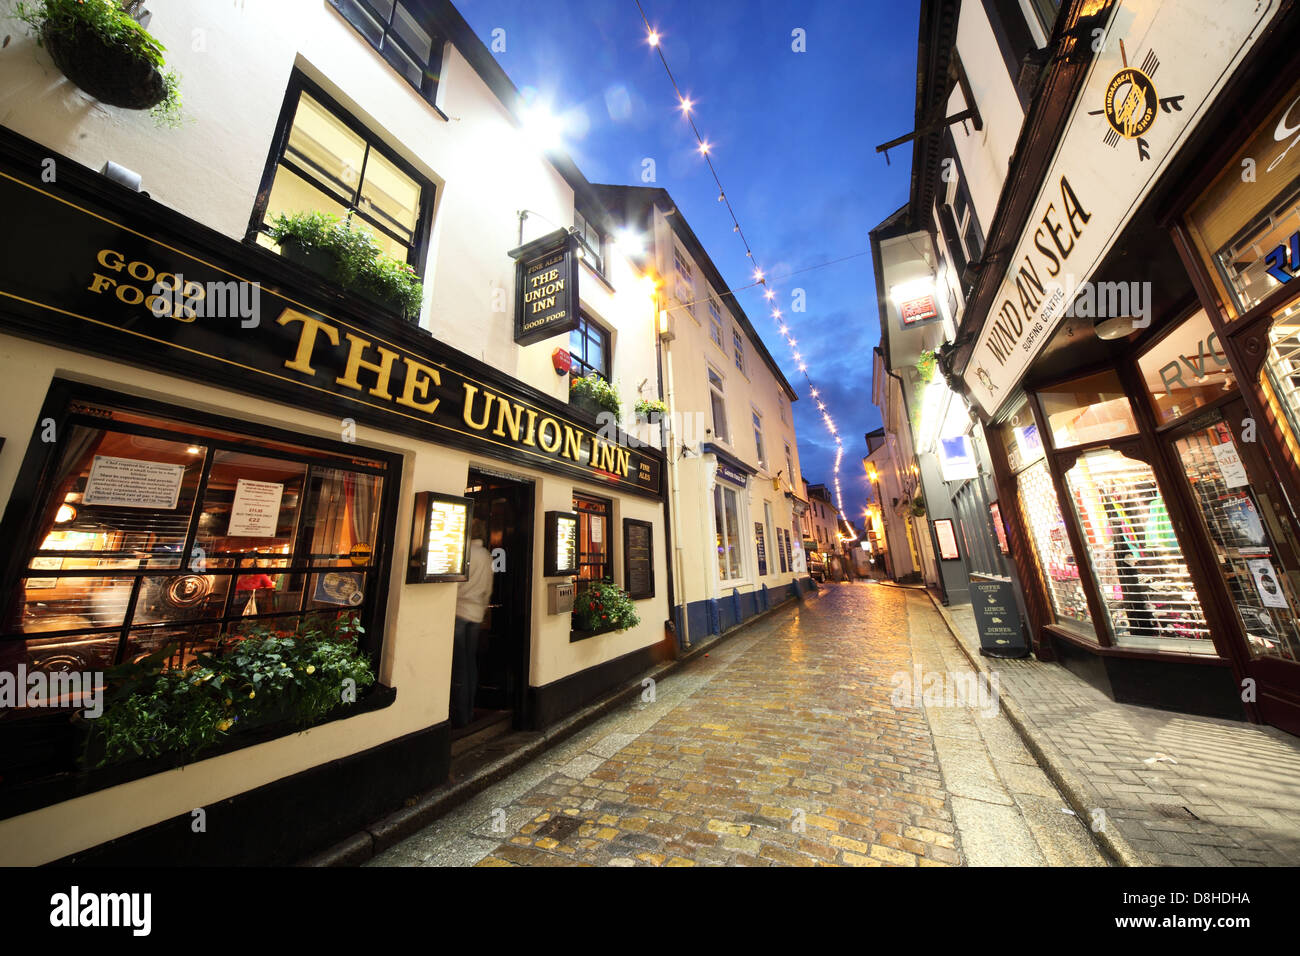 St Ives, Union Inn, 20 Fore Street, St Ives TR26 1AB, Cornwall Stock Photo